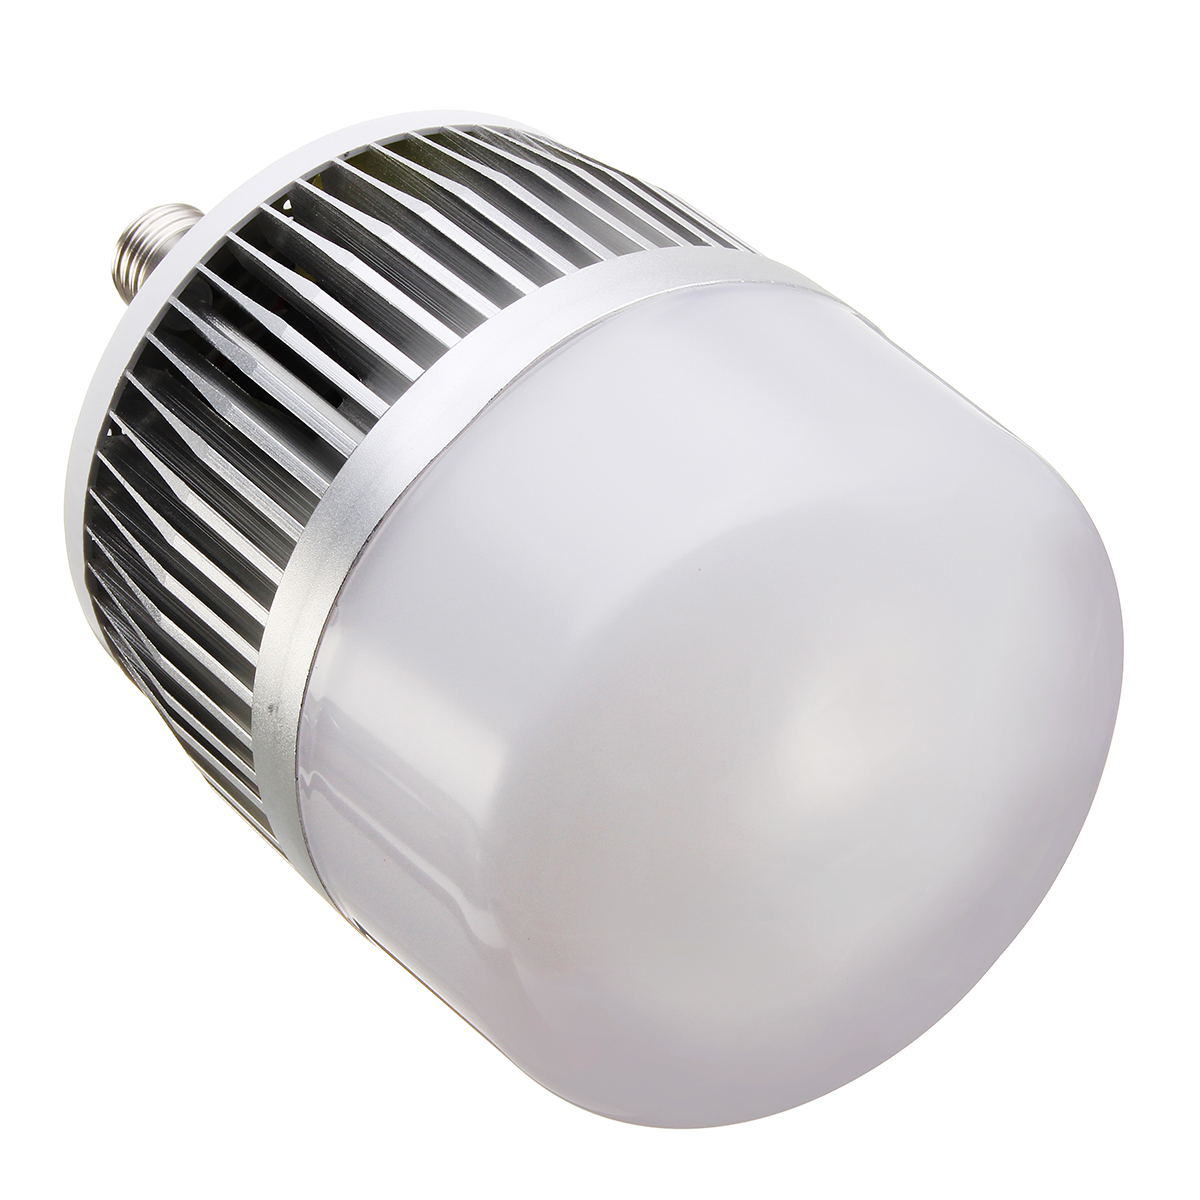 E27 150W 100LM/W SMD3030 Warm White Pure White LED Light Bulb for Factory Industry AC85-265V